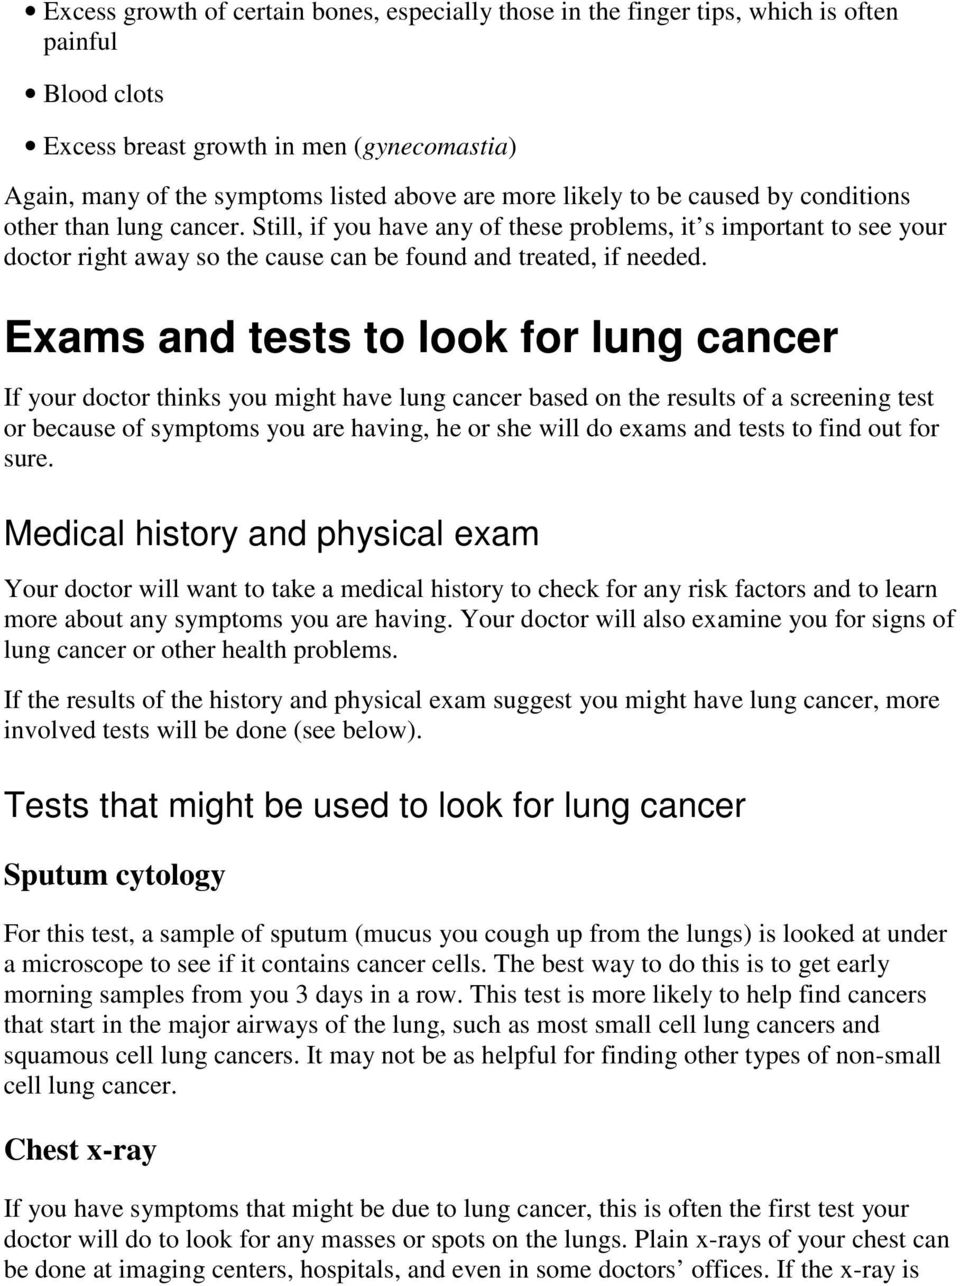 Exams and tests to look for lung cancer If your doctor thinks you might have lung cancer based on the results of a screening test or because of symptoms you are having, he or she will do exams and